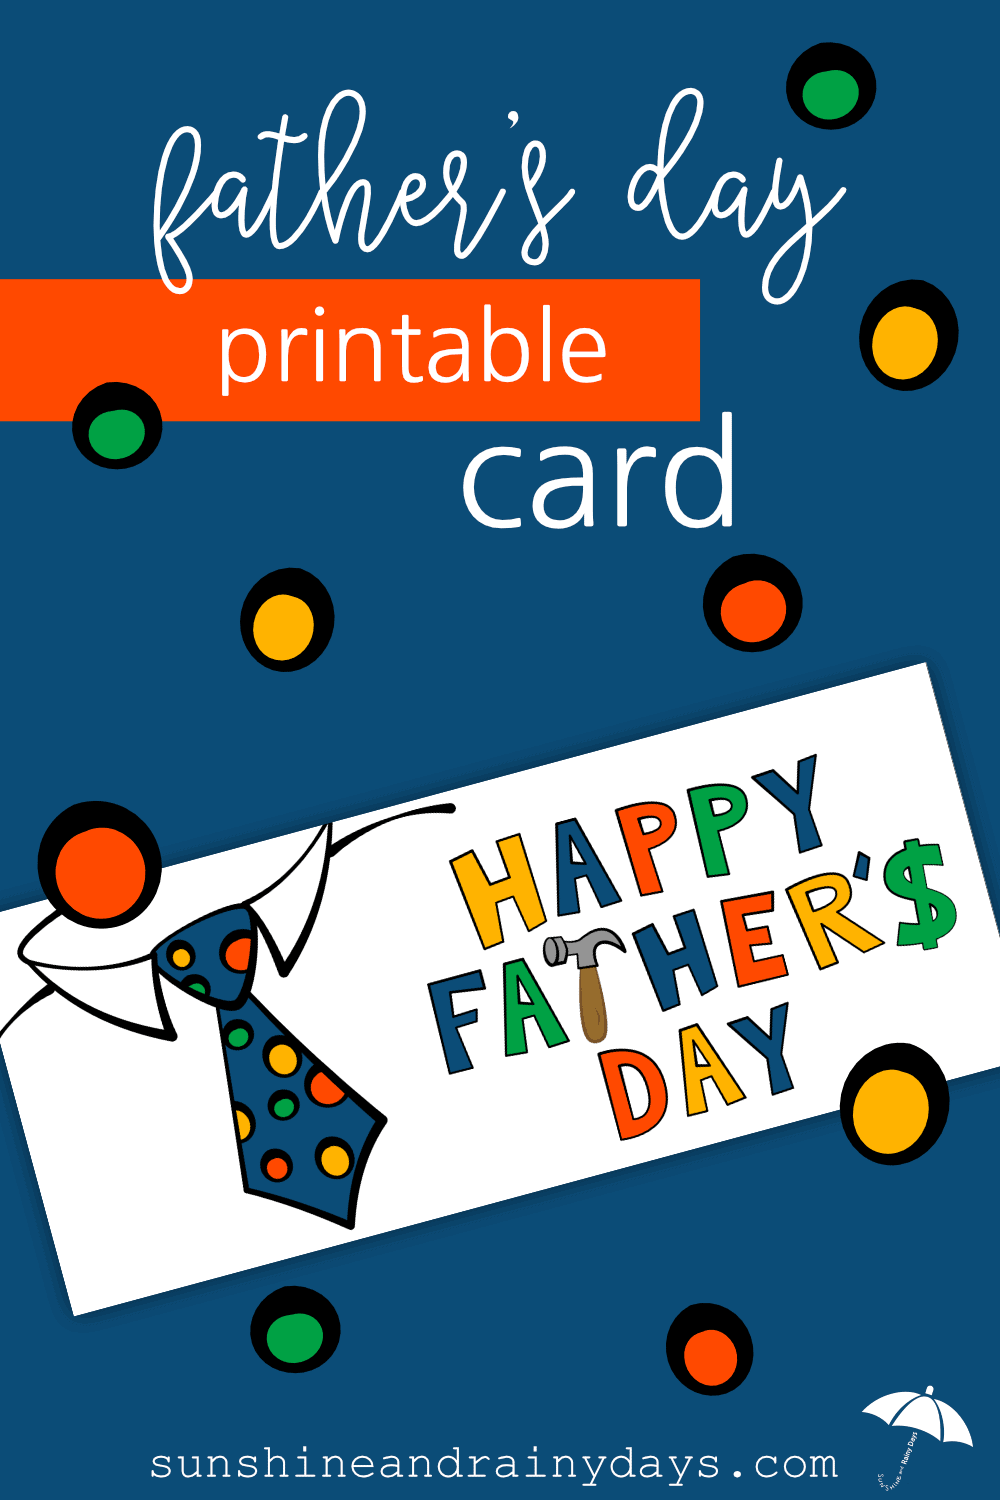 This Printable Father's Day Card is a great way to let your dad know you're thinking of him! Designed to fit in a standard business envelope, it's easy for you and meaningful for dad!